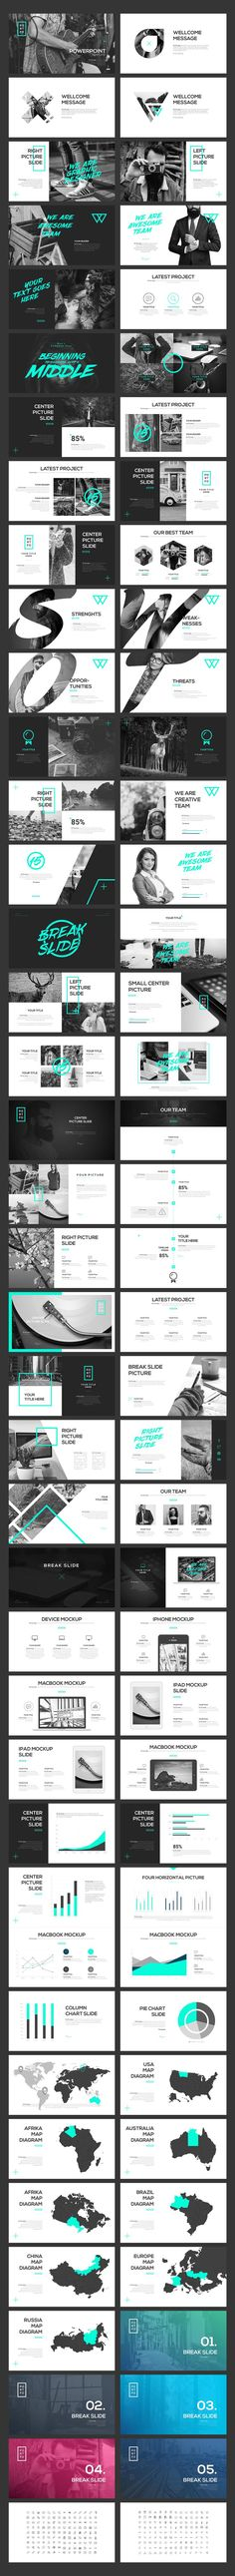 PowerPoint Template ~ PowerPoint Templates ~ Creative MarketPORTFO PowerPoint Template ~ PowerPoint Templates ~ Creative Market Extreme Sports Promo - After Effects Project Files Web Design, Layout Design, Slide Design, Web Layout, Presentation Layout, Presentation Templates, Mise En Page Web, Magazine Ideas, Web Mobile